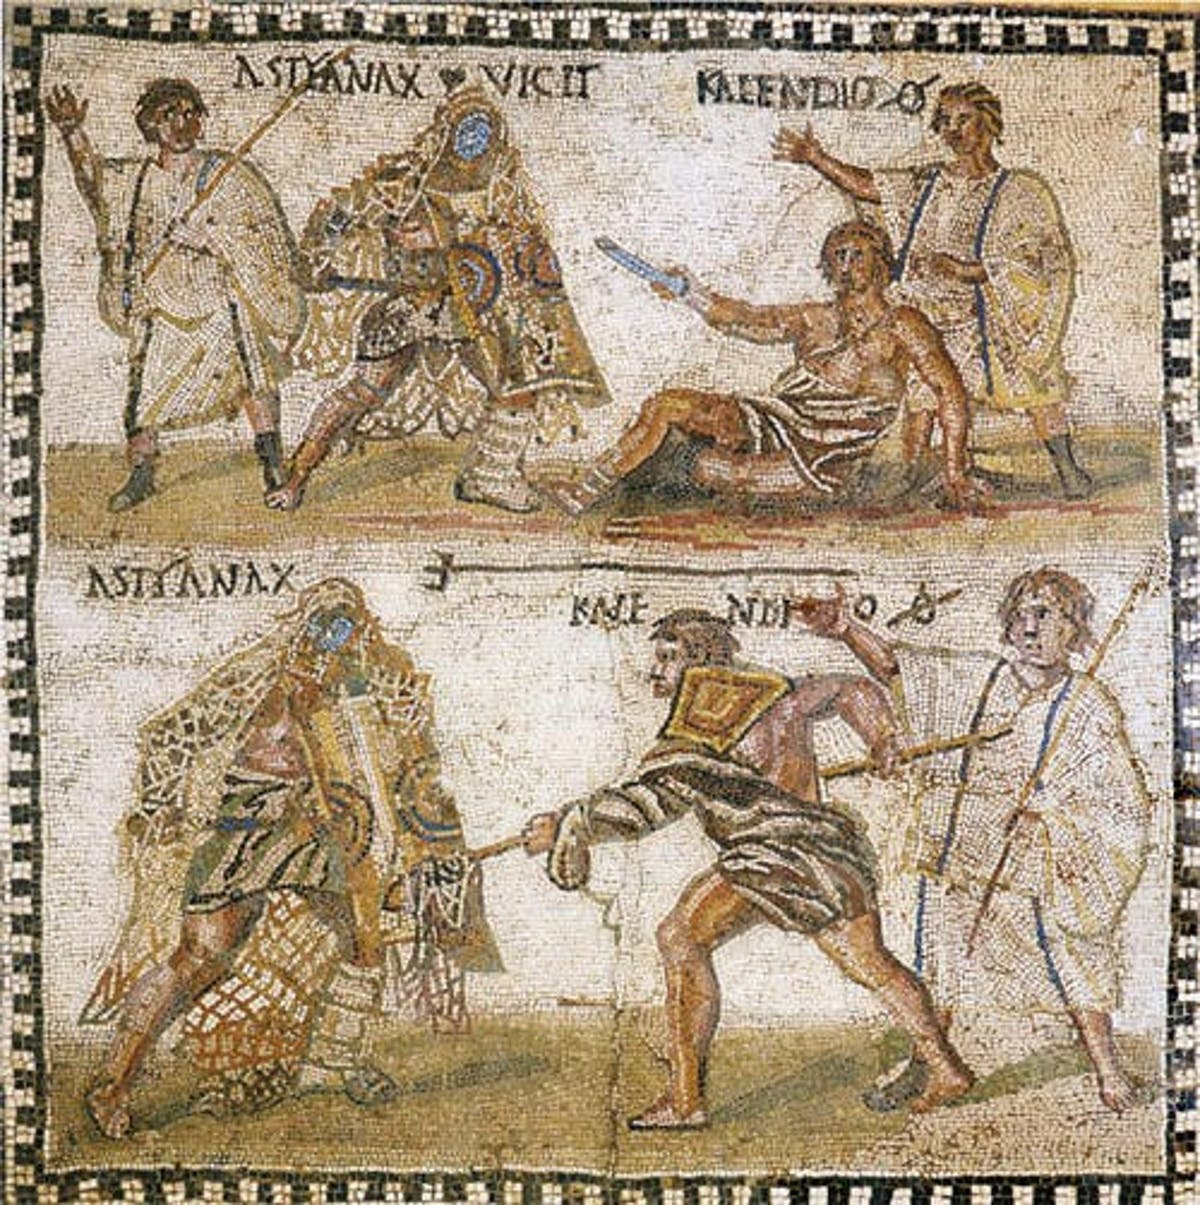 Roman Gladiators were mostly Vegetarian, Drank Sports Drinks from